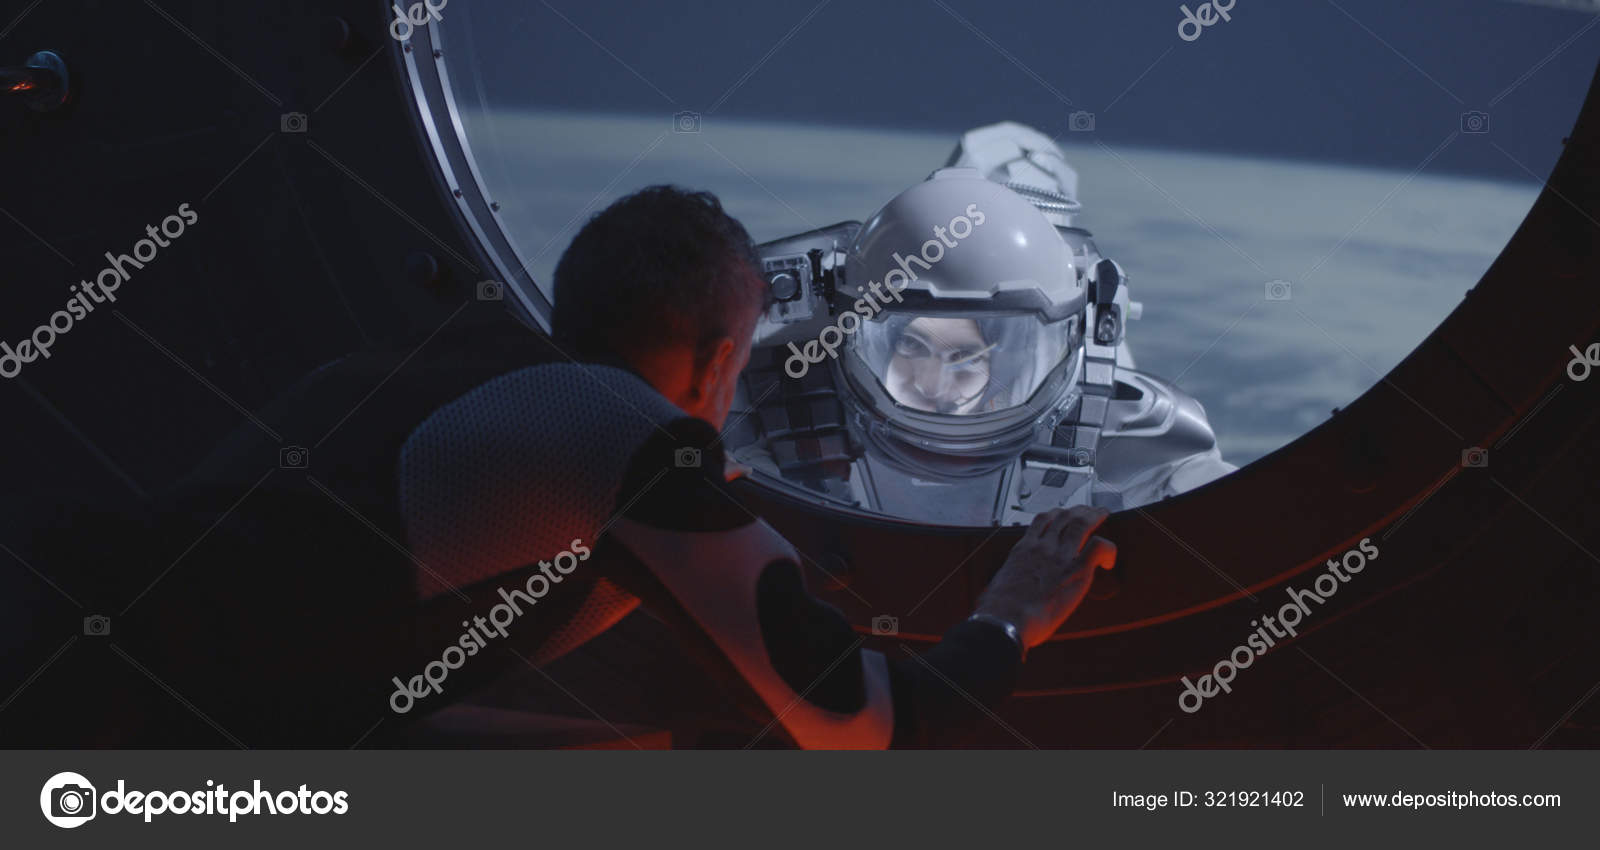 Astronaut talking with spacewalking crewmate